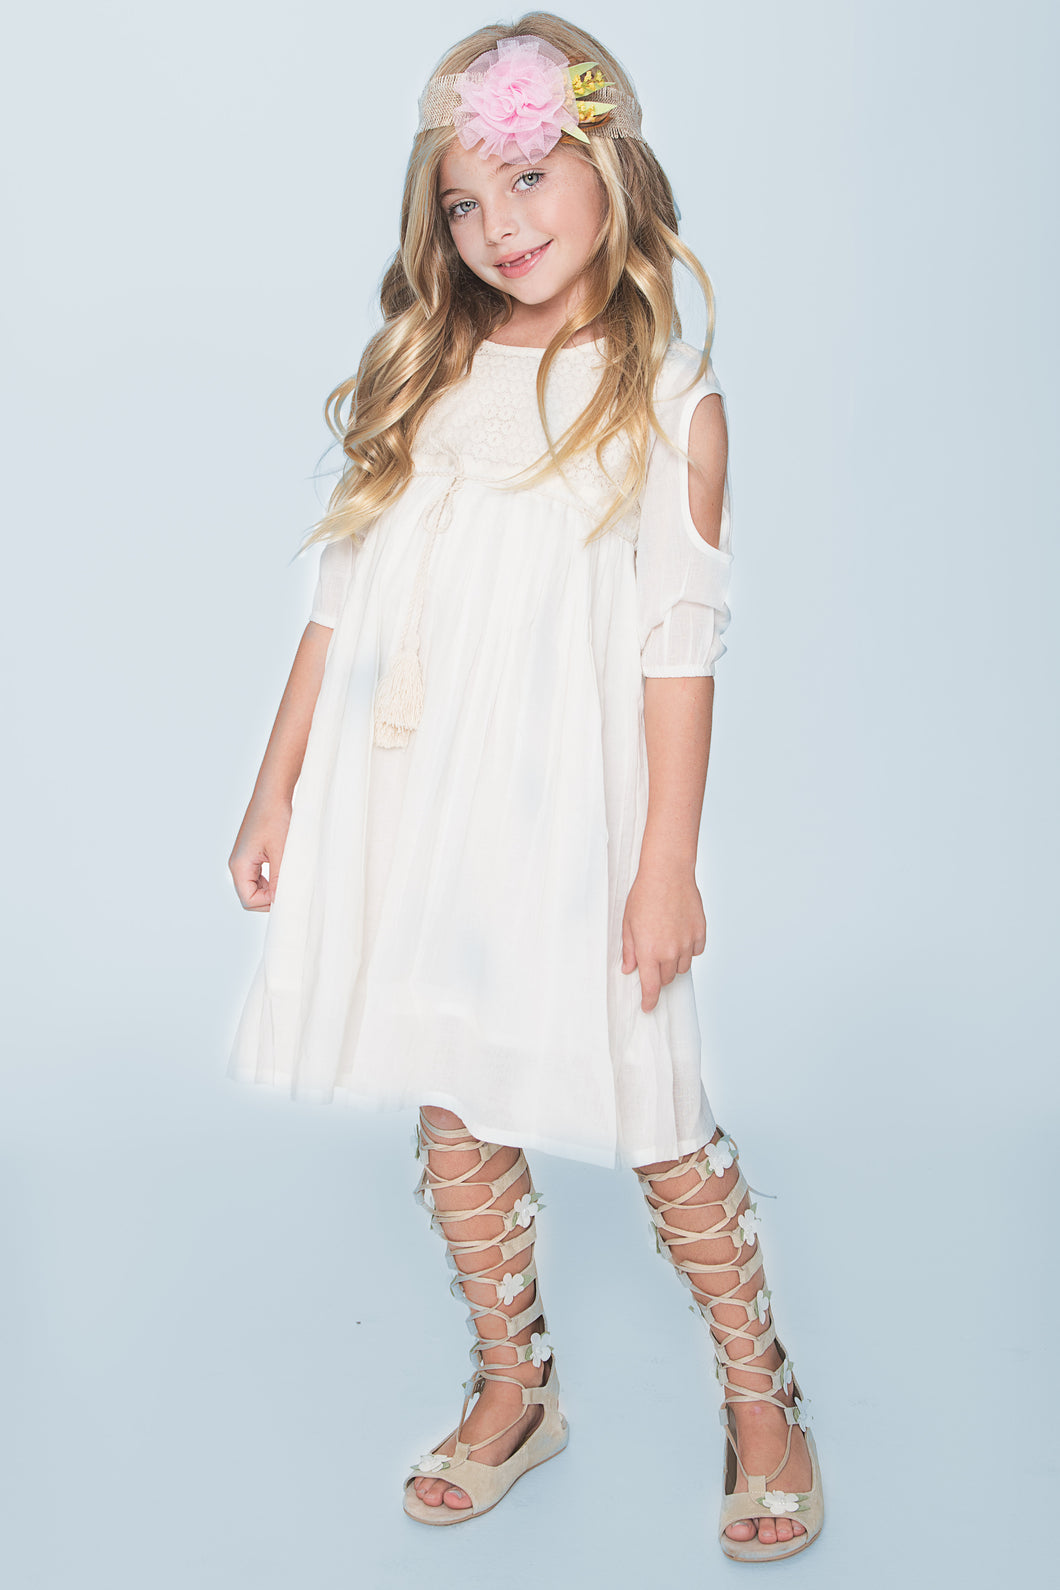 e1efe912079 Off-White Lace Detail Cold Shoulder Dress - Kids Wholesale Boutique  Clothing